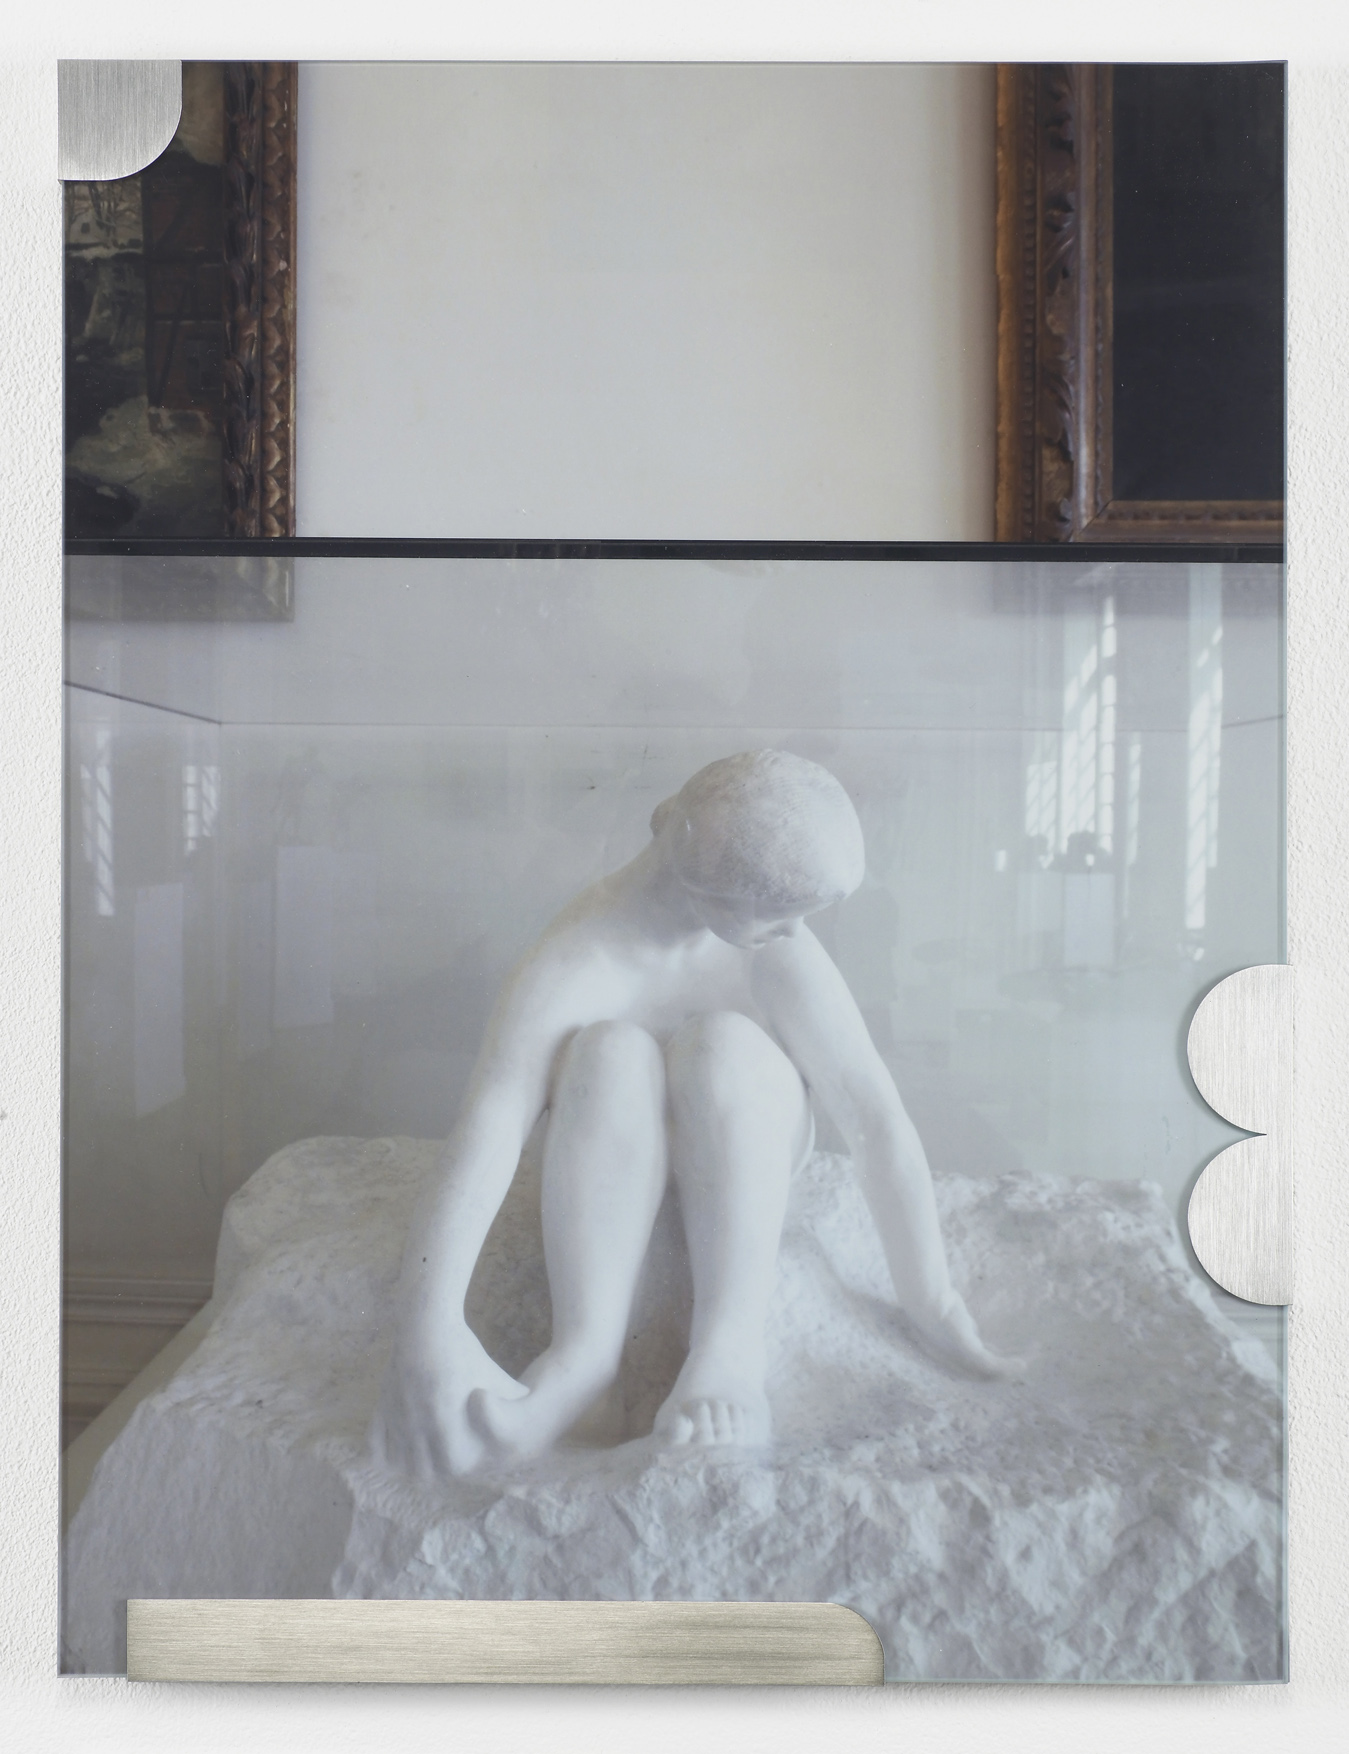 Buhuu Suite (Girl in snow) 2011 C-print, stainless steel clips, clip frame 40 x 30 x 1.5 cm / 15.7 x 11.8 x 0.6 in